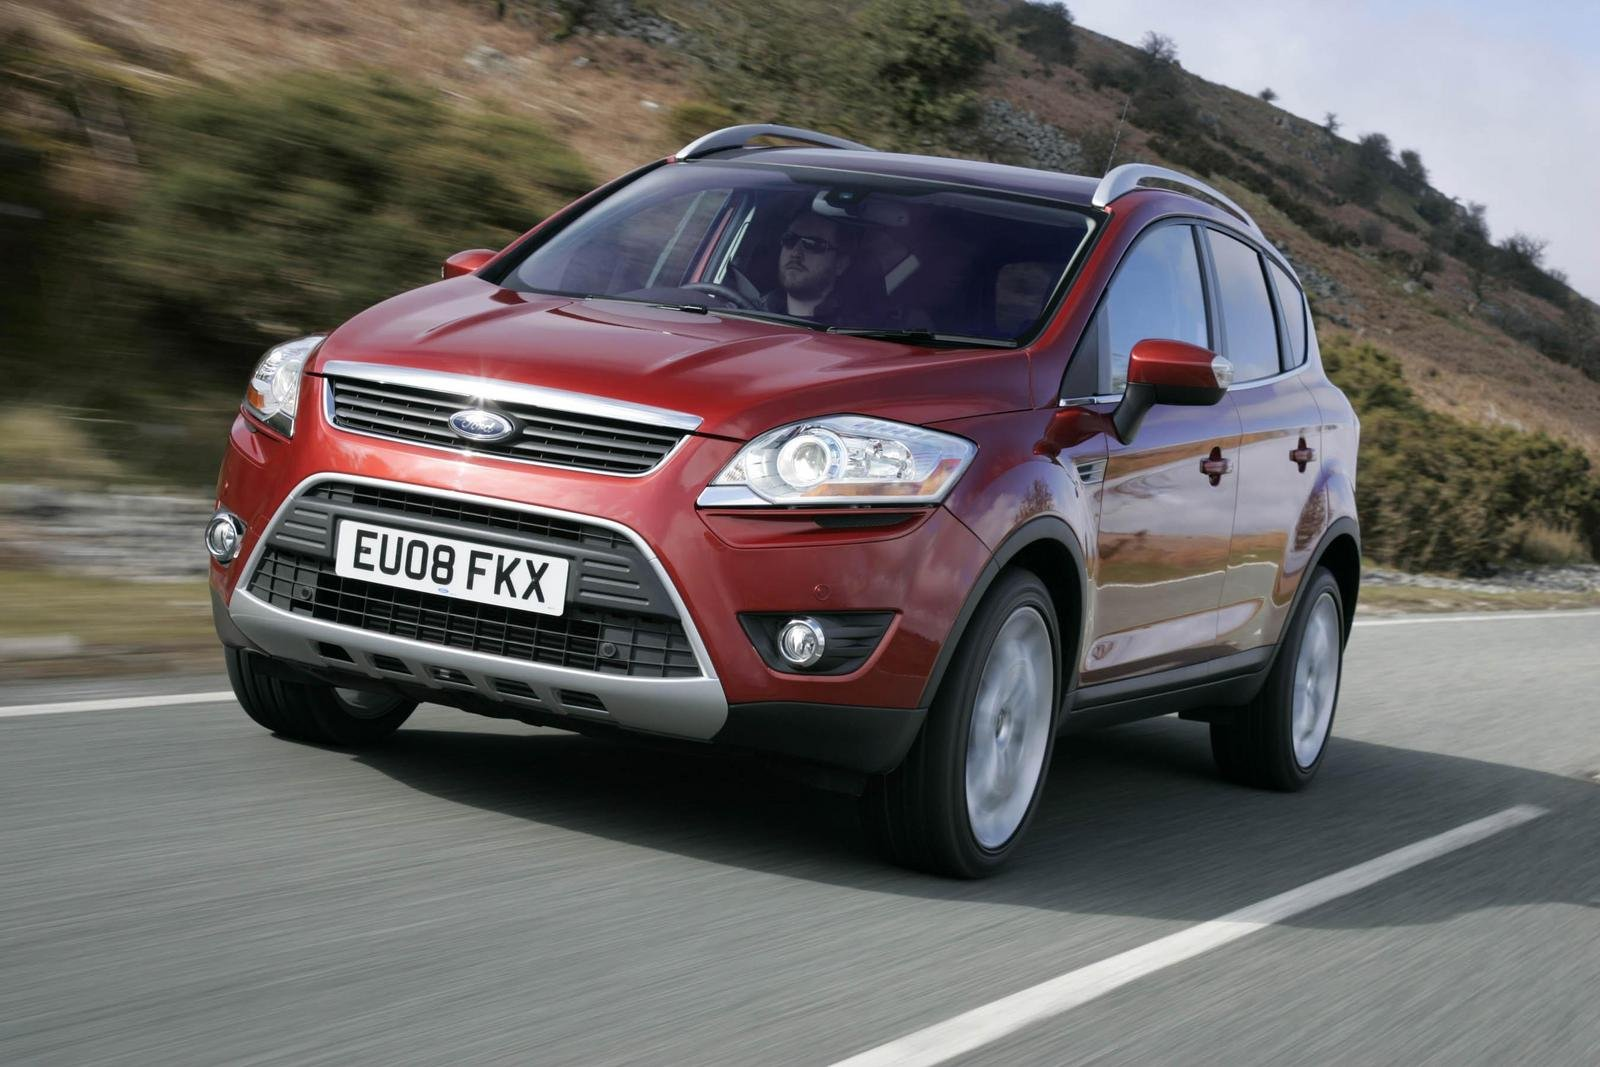 2009 ford kuga picture 287838 car review top speed. Black Bedroom Furniture Sets. Home Design Ideas